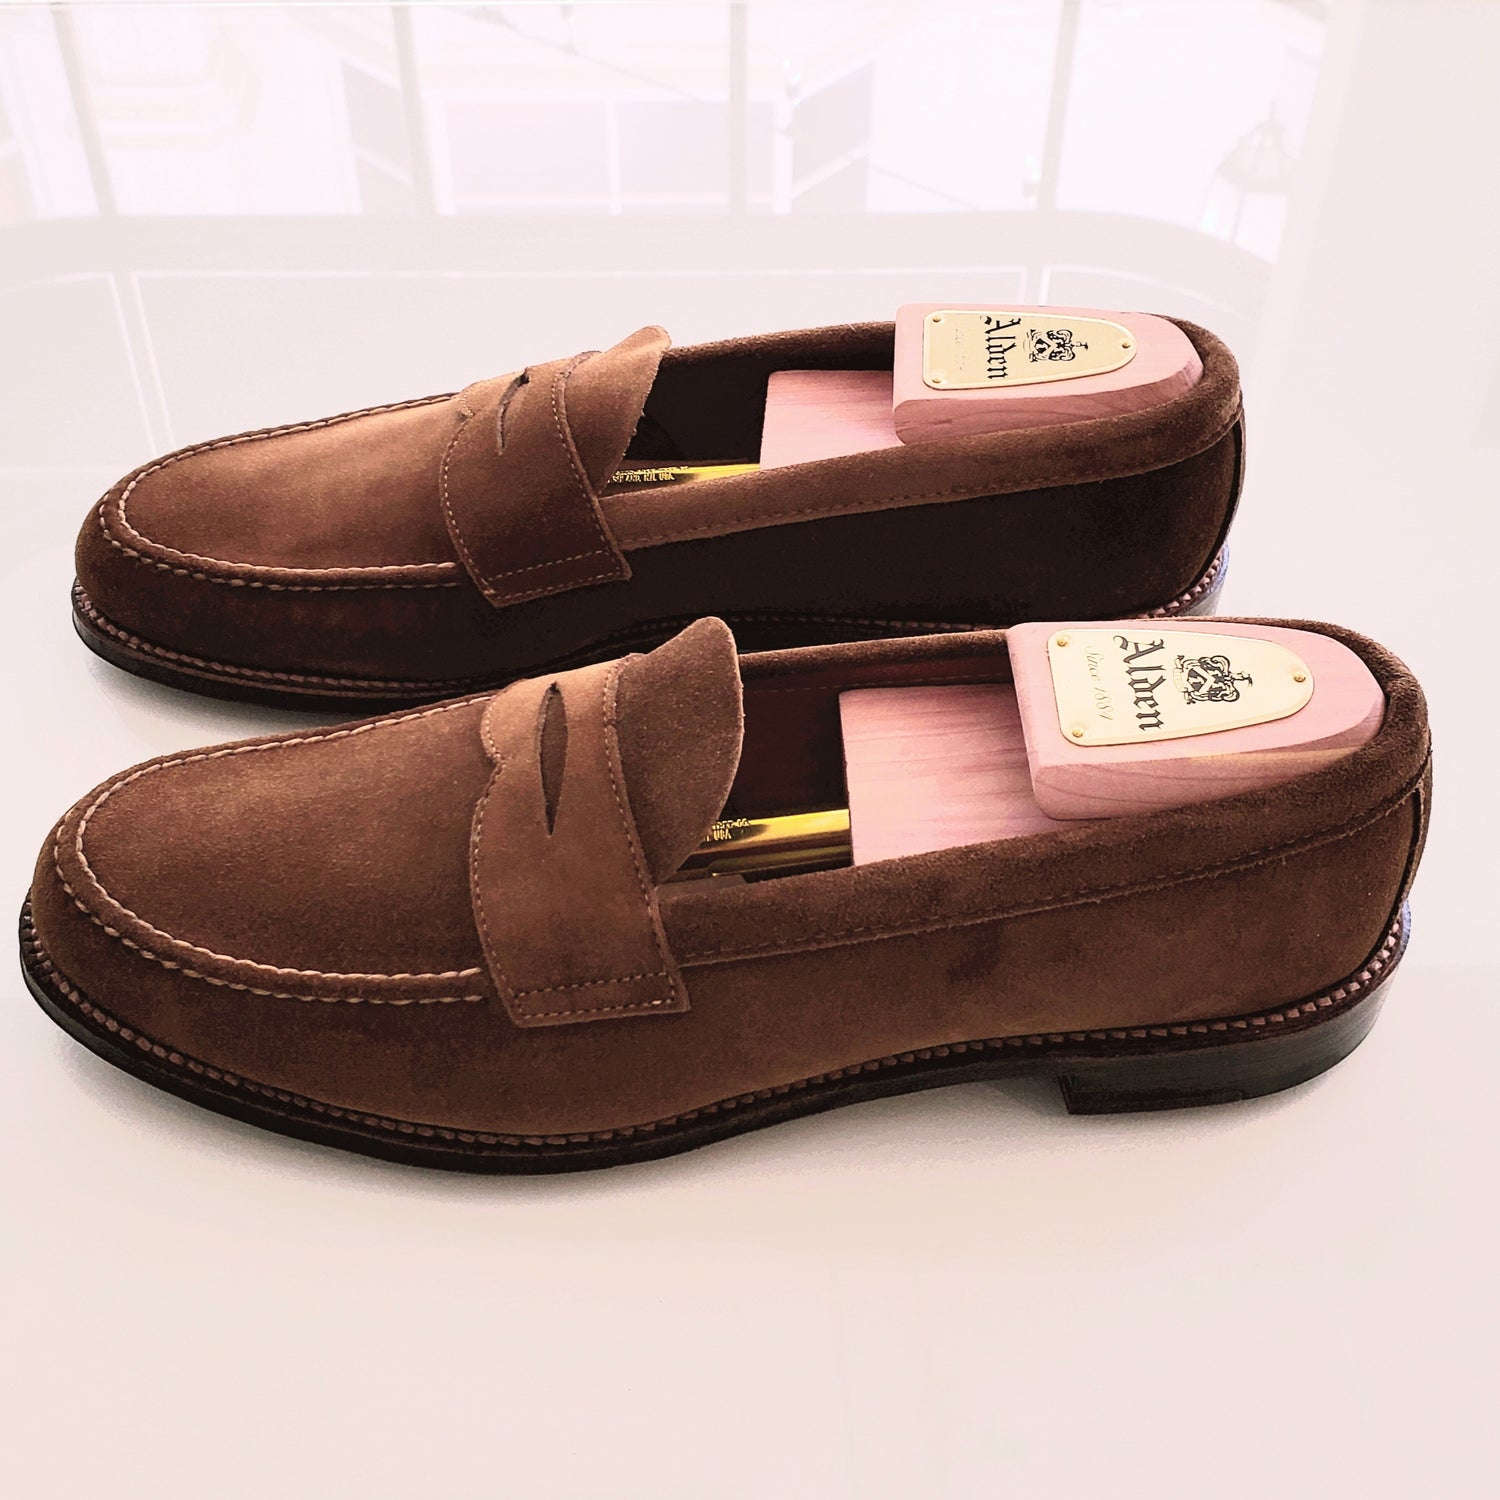 Alden Unlined Flex Snuff Suede Penny Loafers